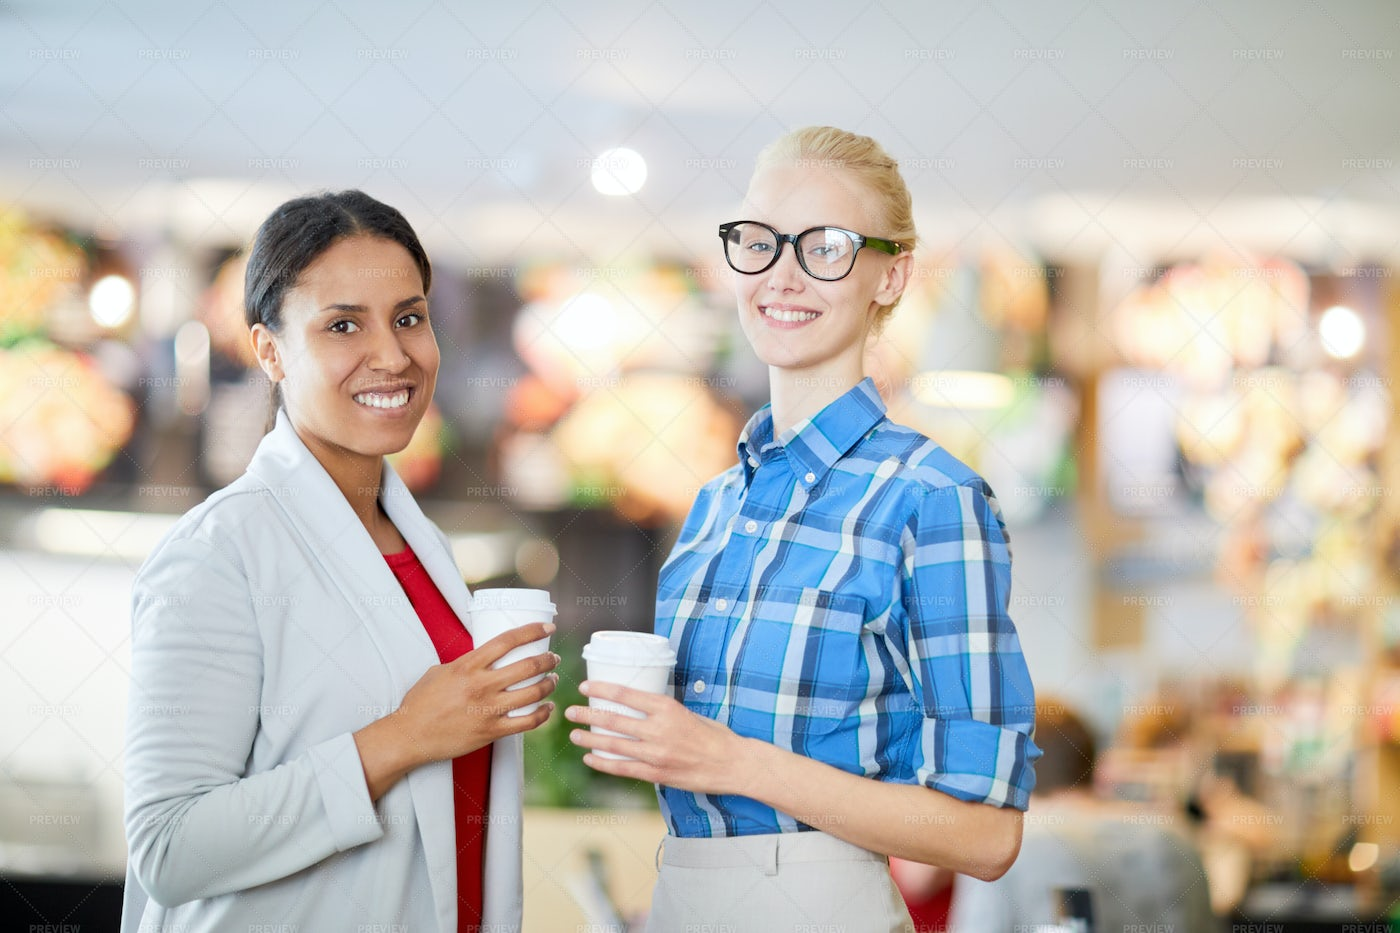 Women With Drinks: Stock Photos